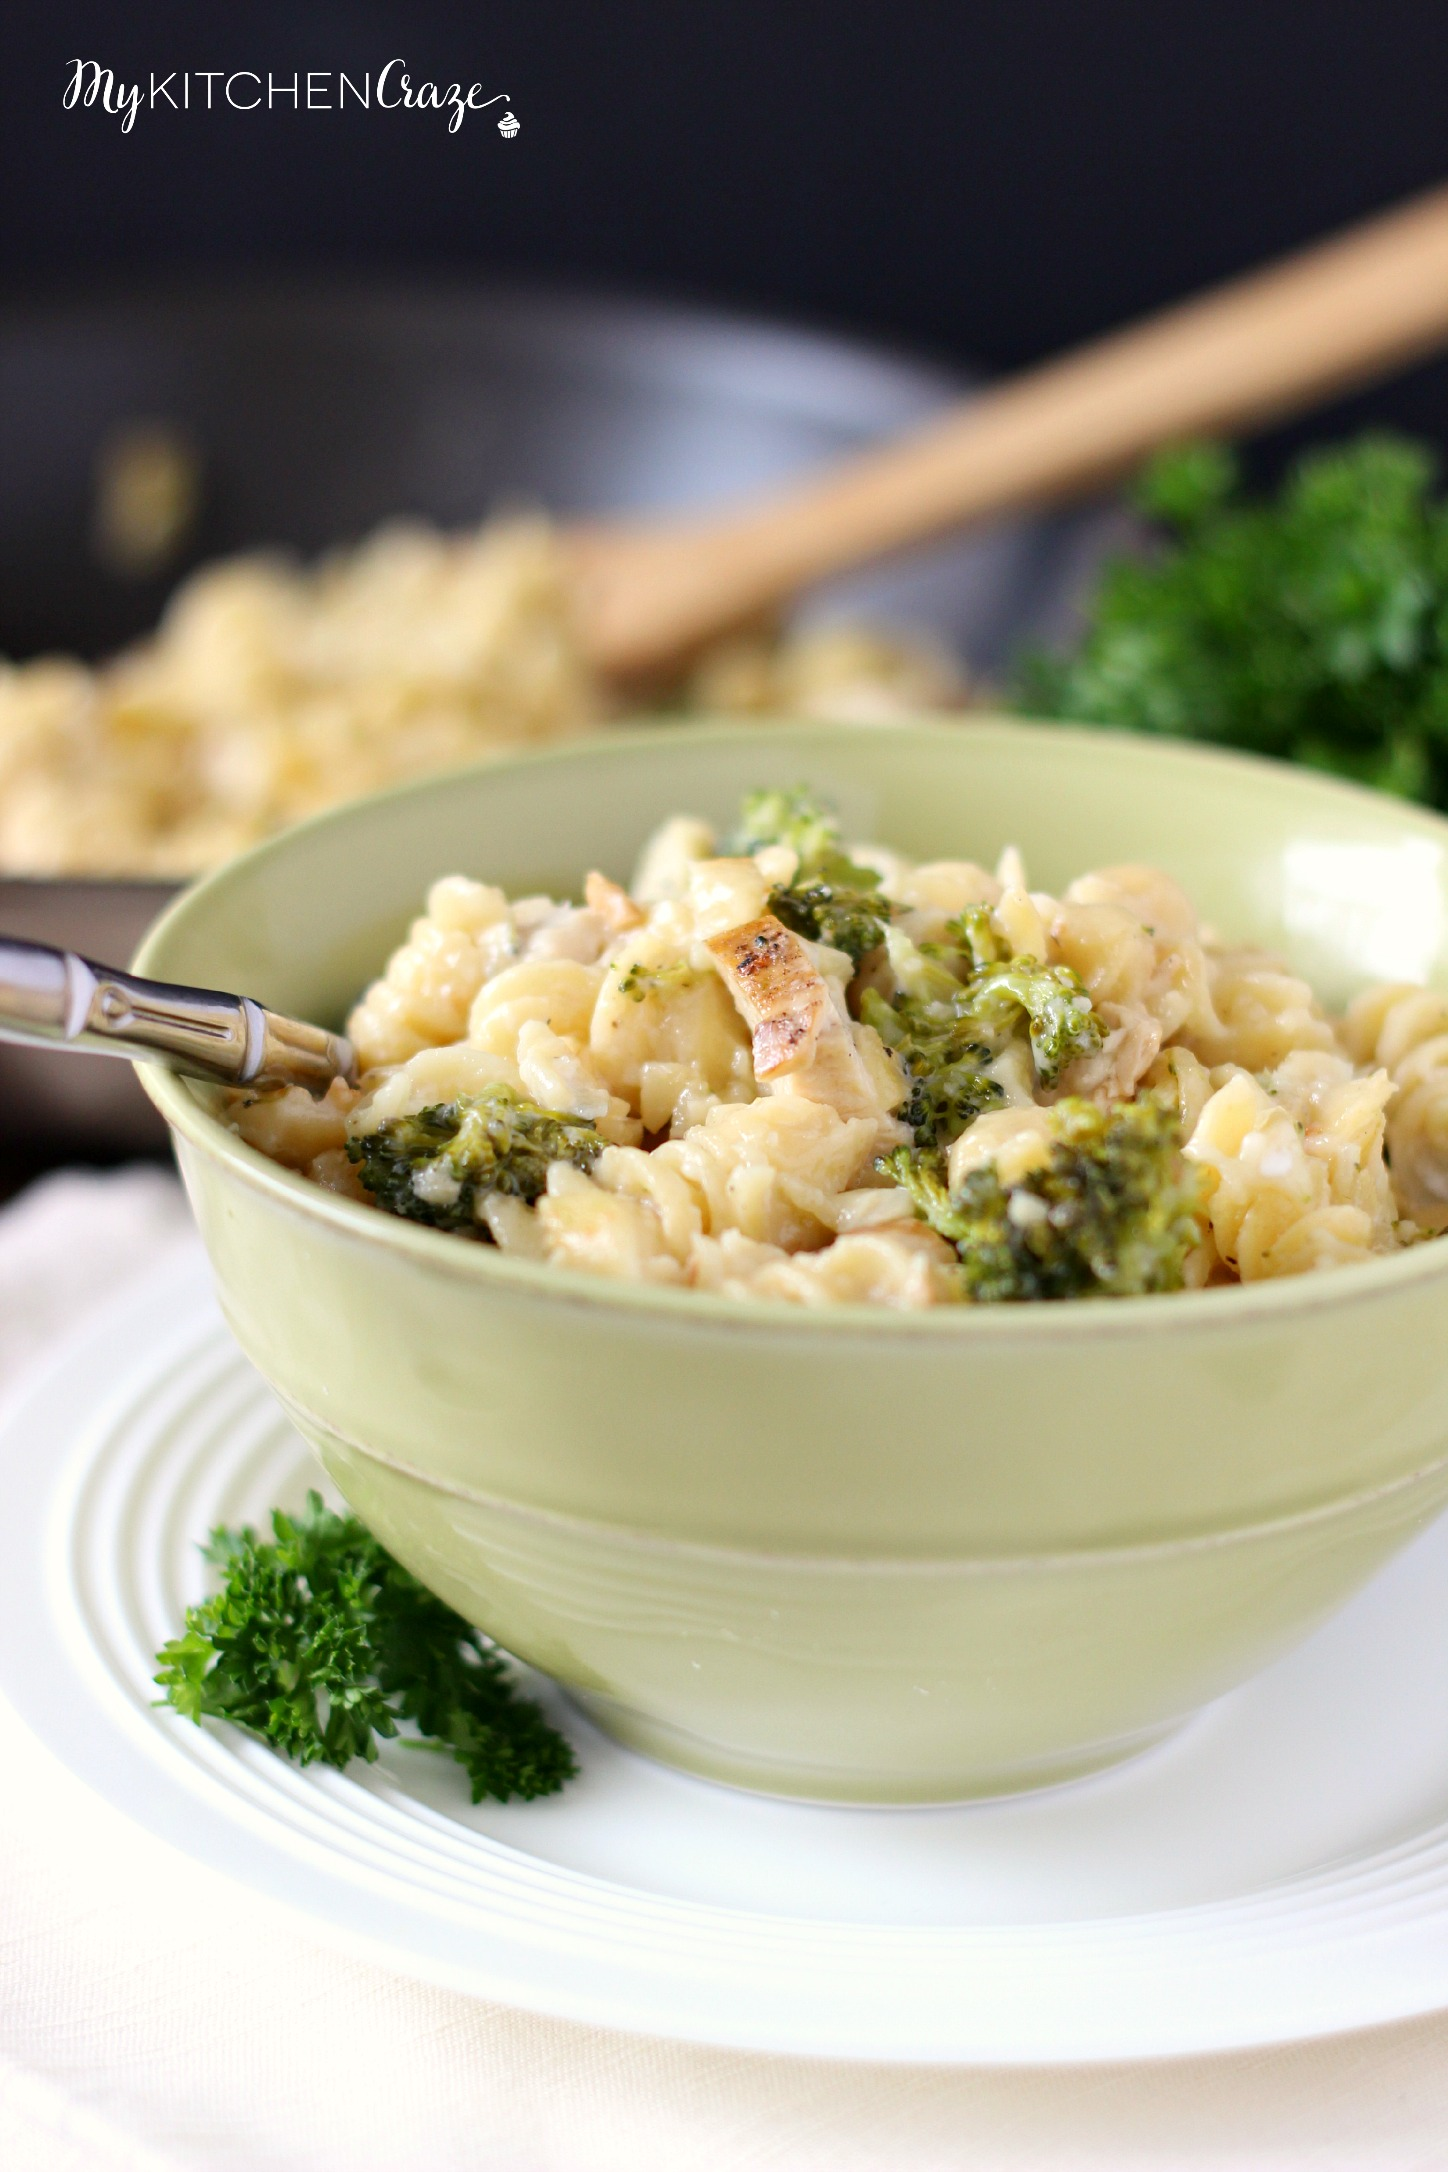 Skinny Chicken & Broccoli Alfredo ~ mykitchencraze.com ~ You can have your Alfredo pasta in a creamy healthier version!